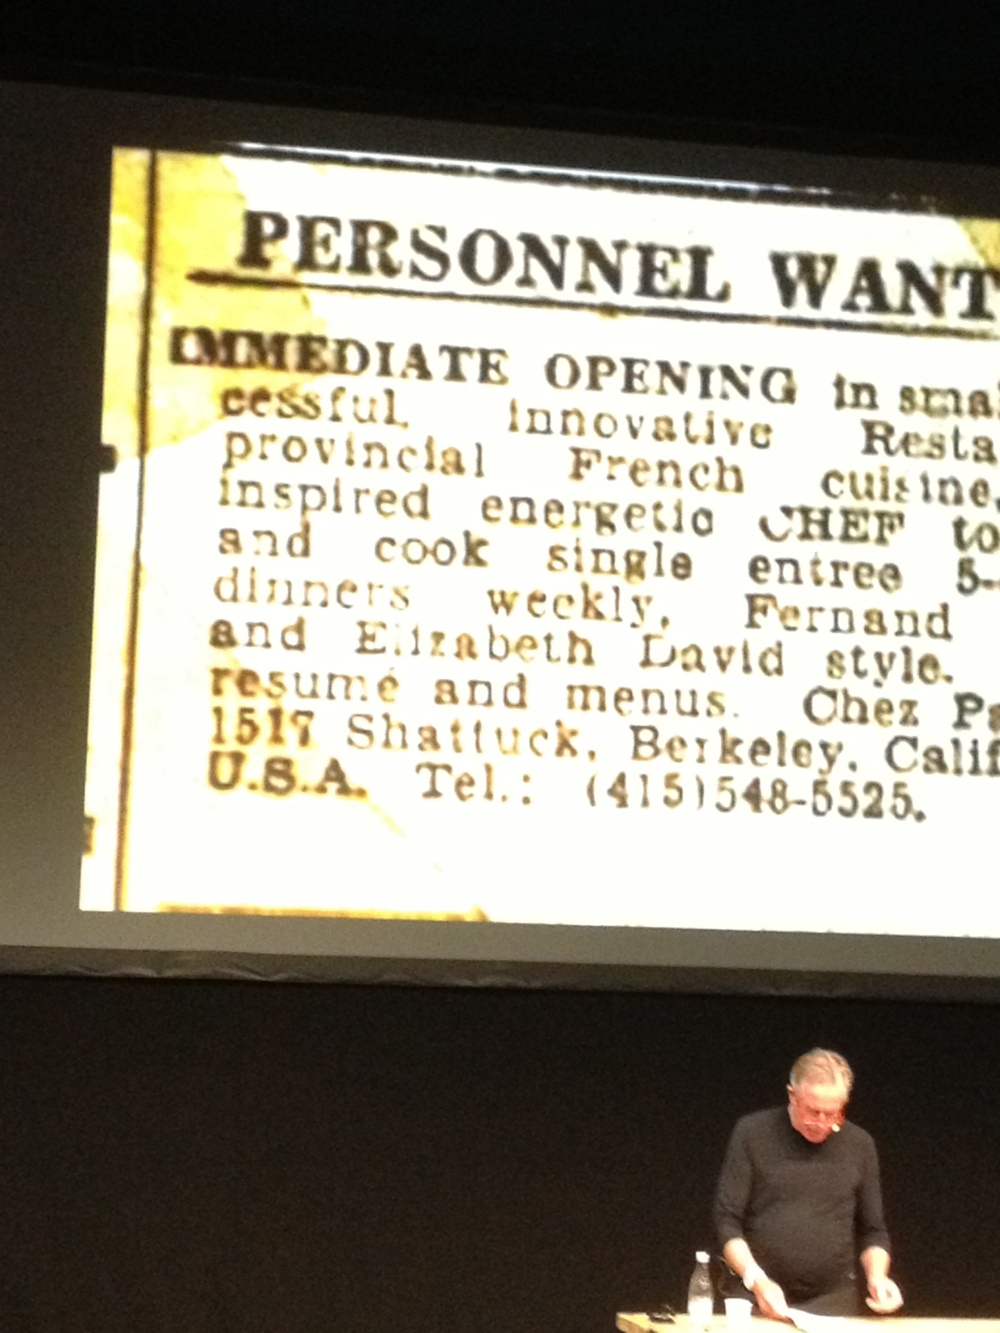 The ad that brought Jeremiah Towers to Chez Panisse